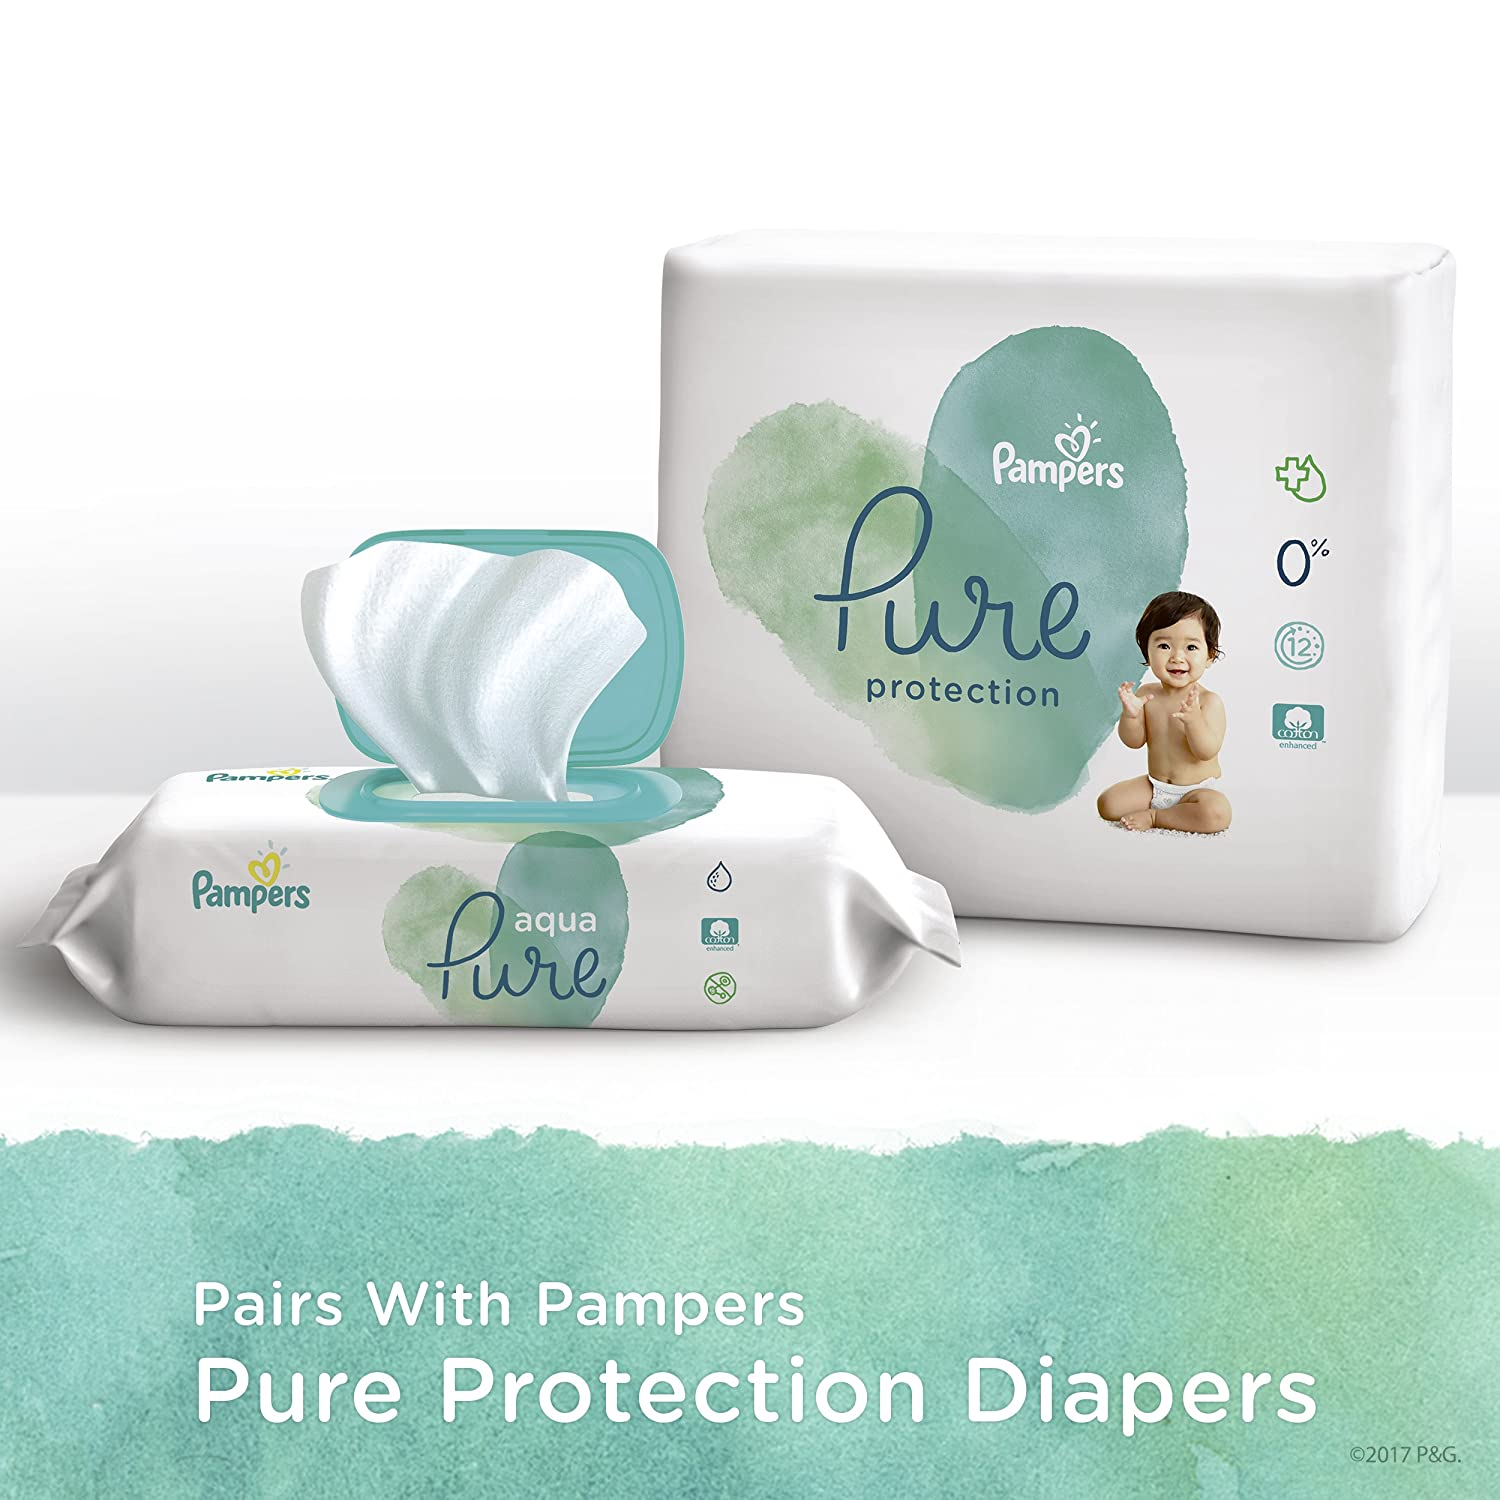 Pampers Aqua Baby Diaper Wipes: The Best Baby Wipes for Diaper Rashes